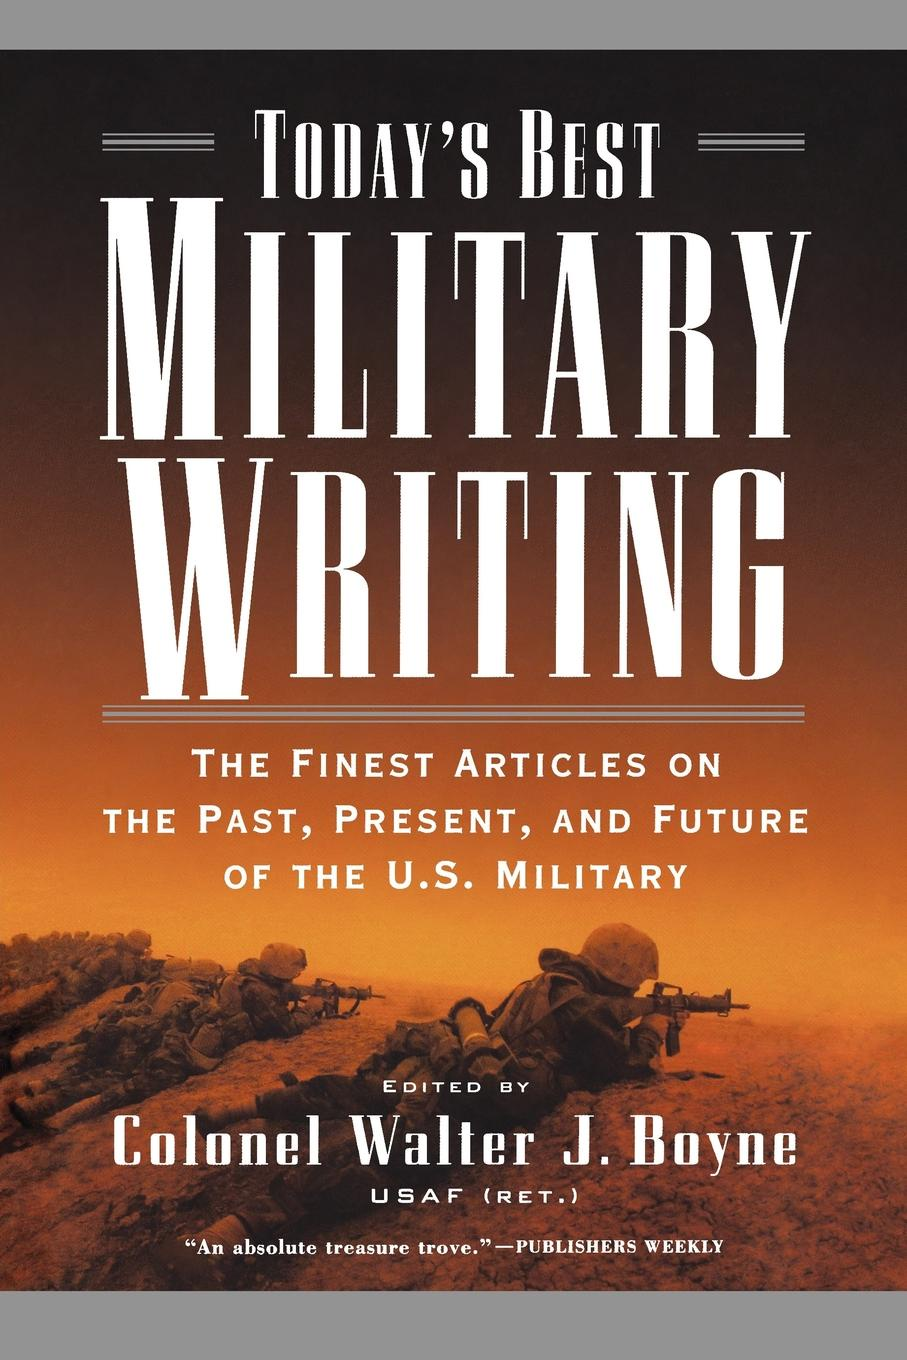 Today's Best Military Writing. The Finest Articles on the Past, Present, and Future of the U.S. Military anastasia novykh predictions of the future and truth about the past and the present